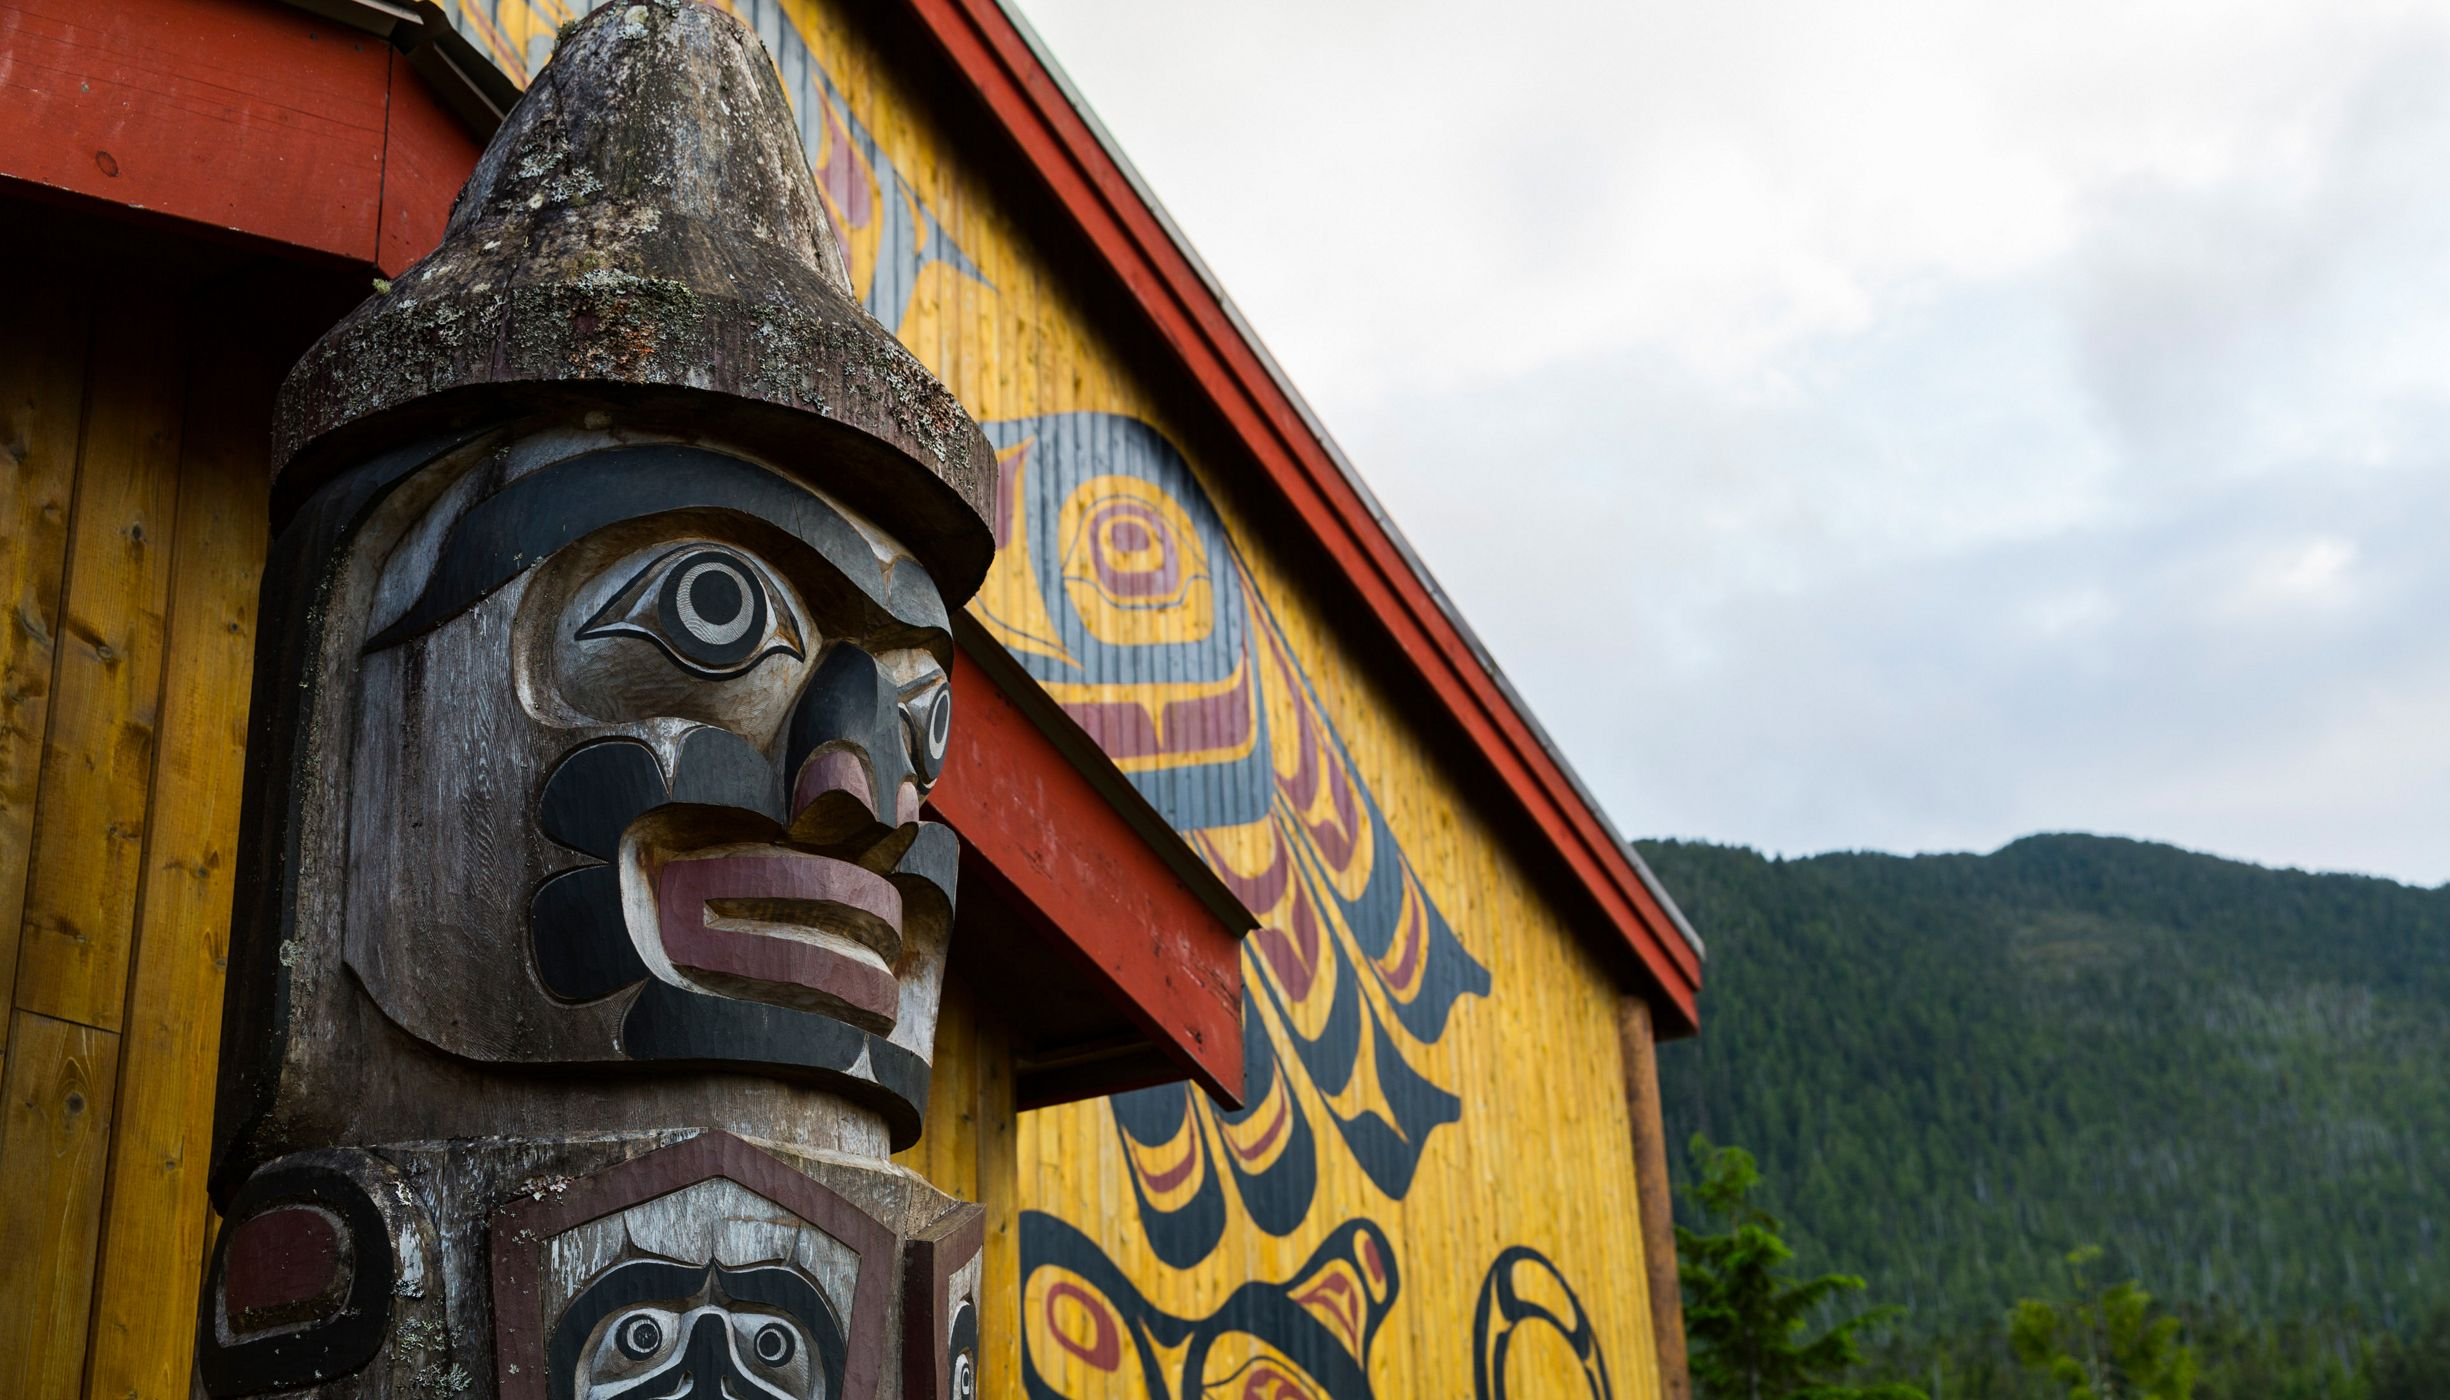 a totem pole in front of the big house in Klemtu, BC